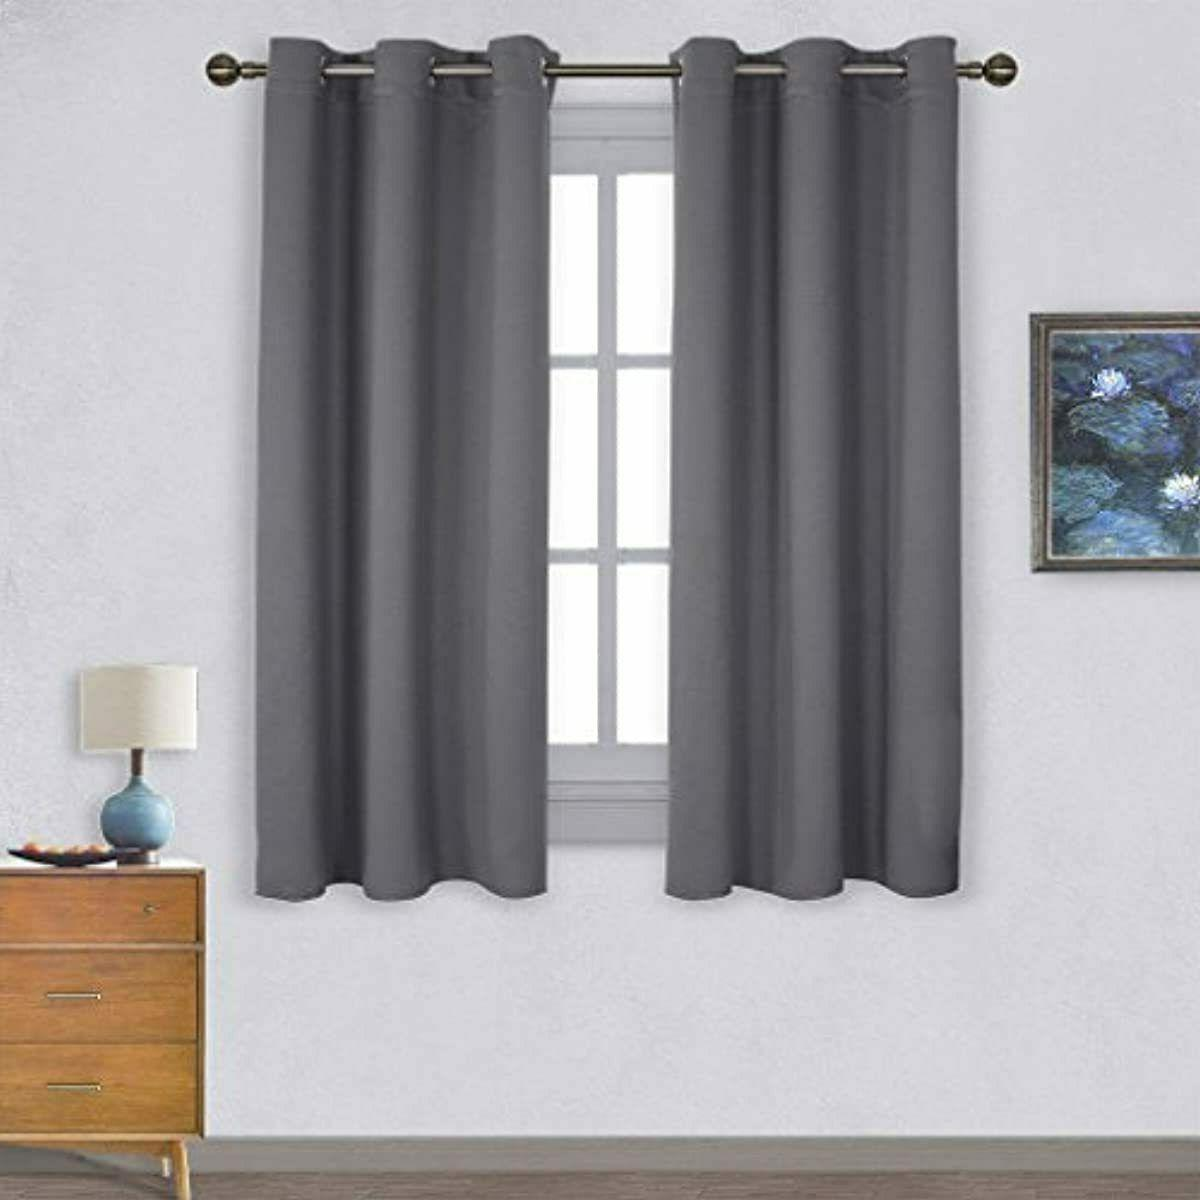 NICETOWN Blackout Curtains (2